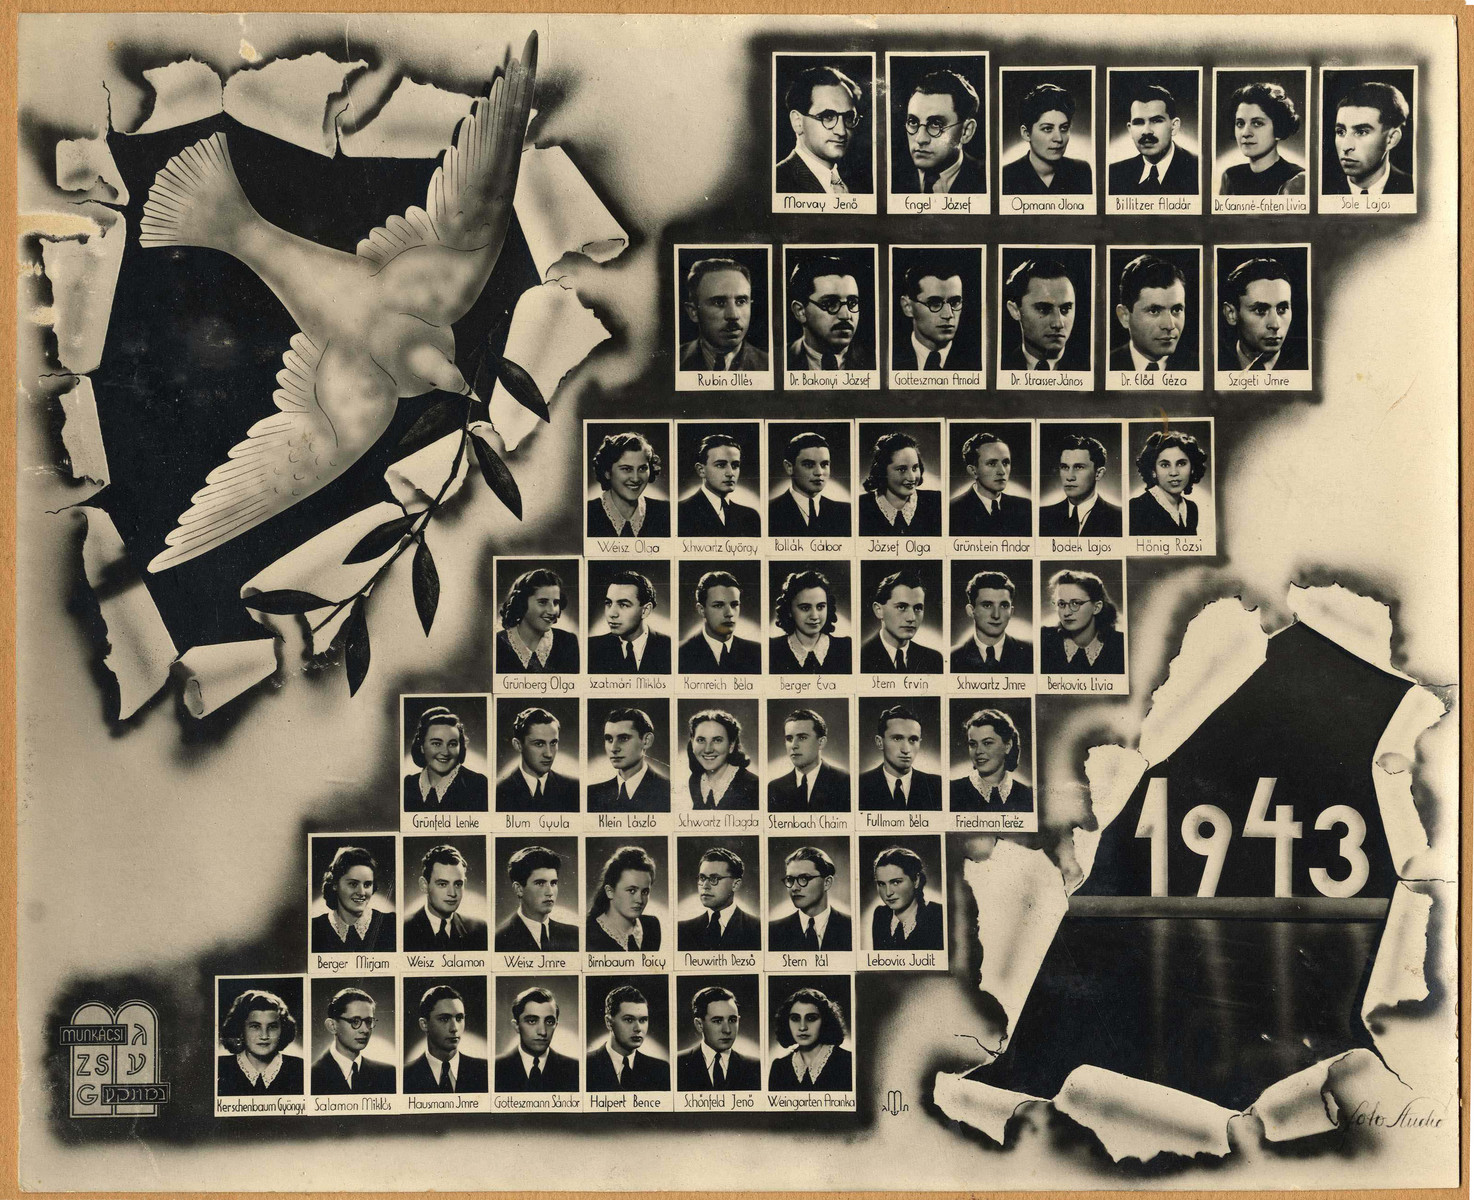 This 1943 composite picture shows the last graduating class of the Jewish Gymnasium in Munkacs.  Olga Weisz (later Wachtenheim) is pictured in the class photo.